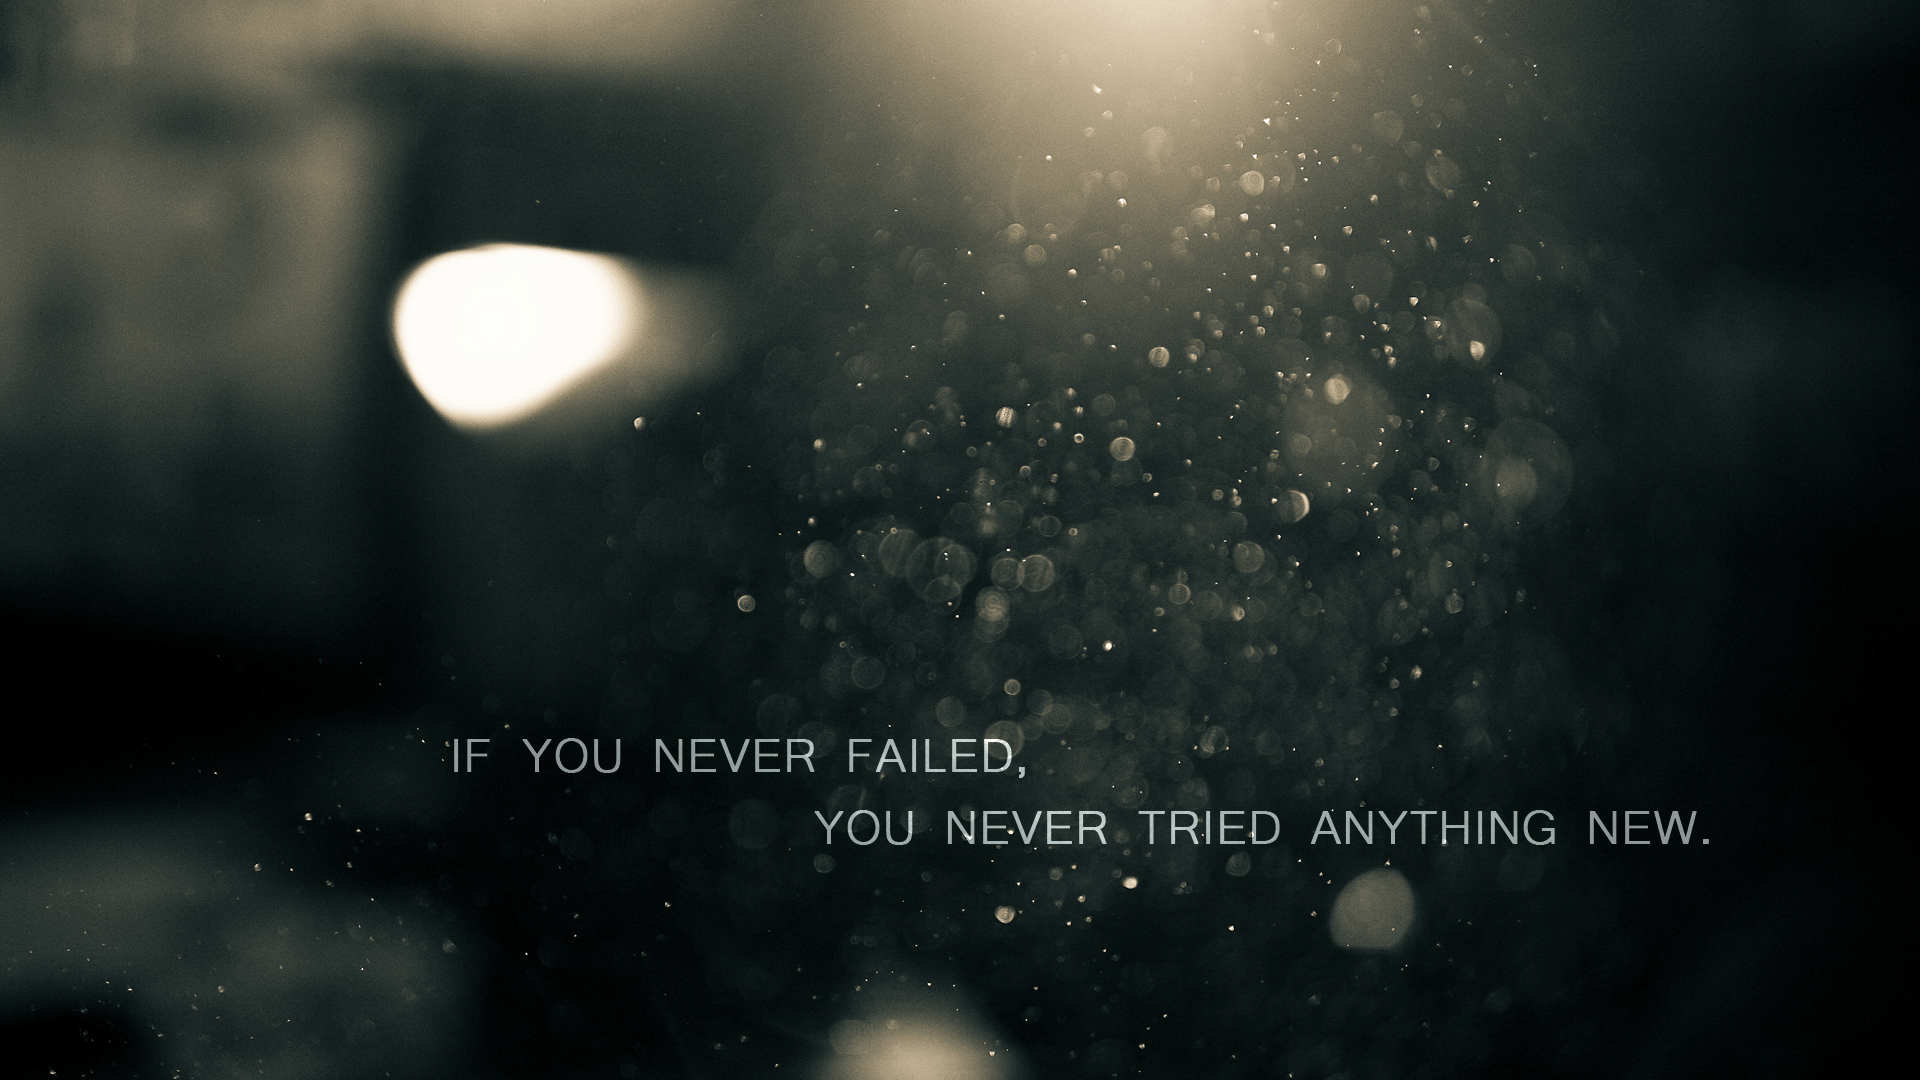 [Image] If You Never Failed…